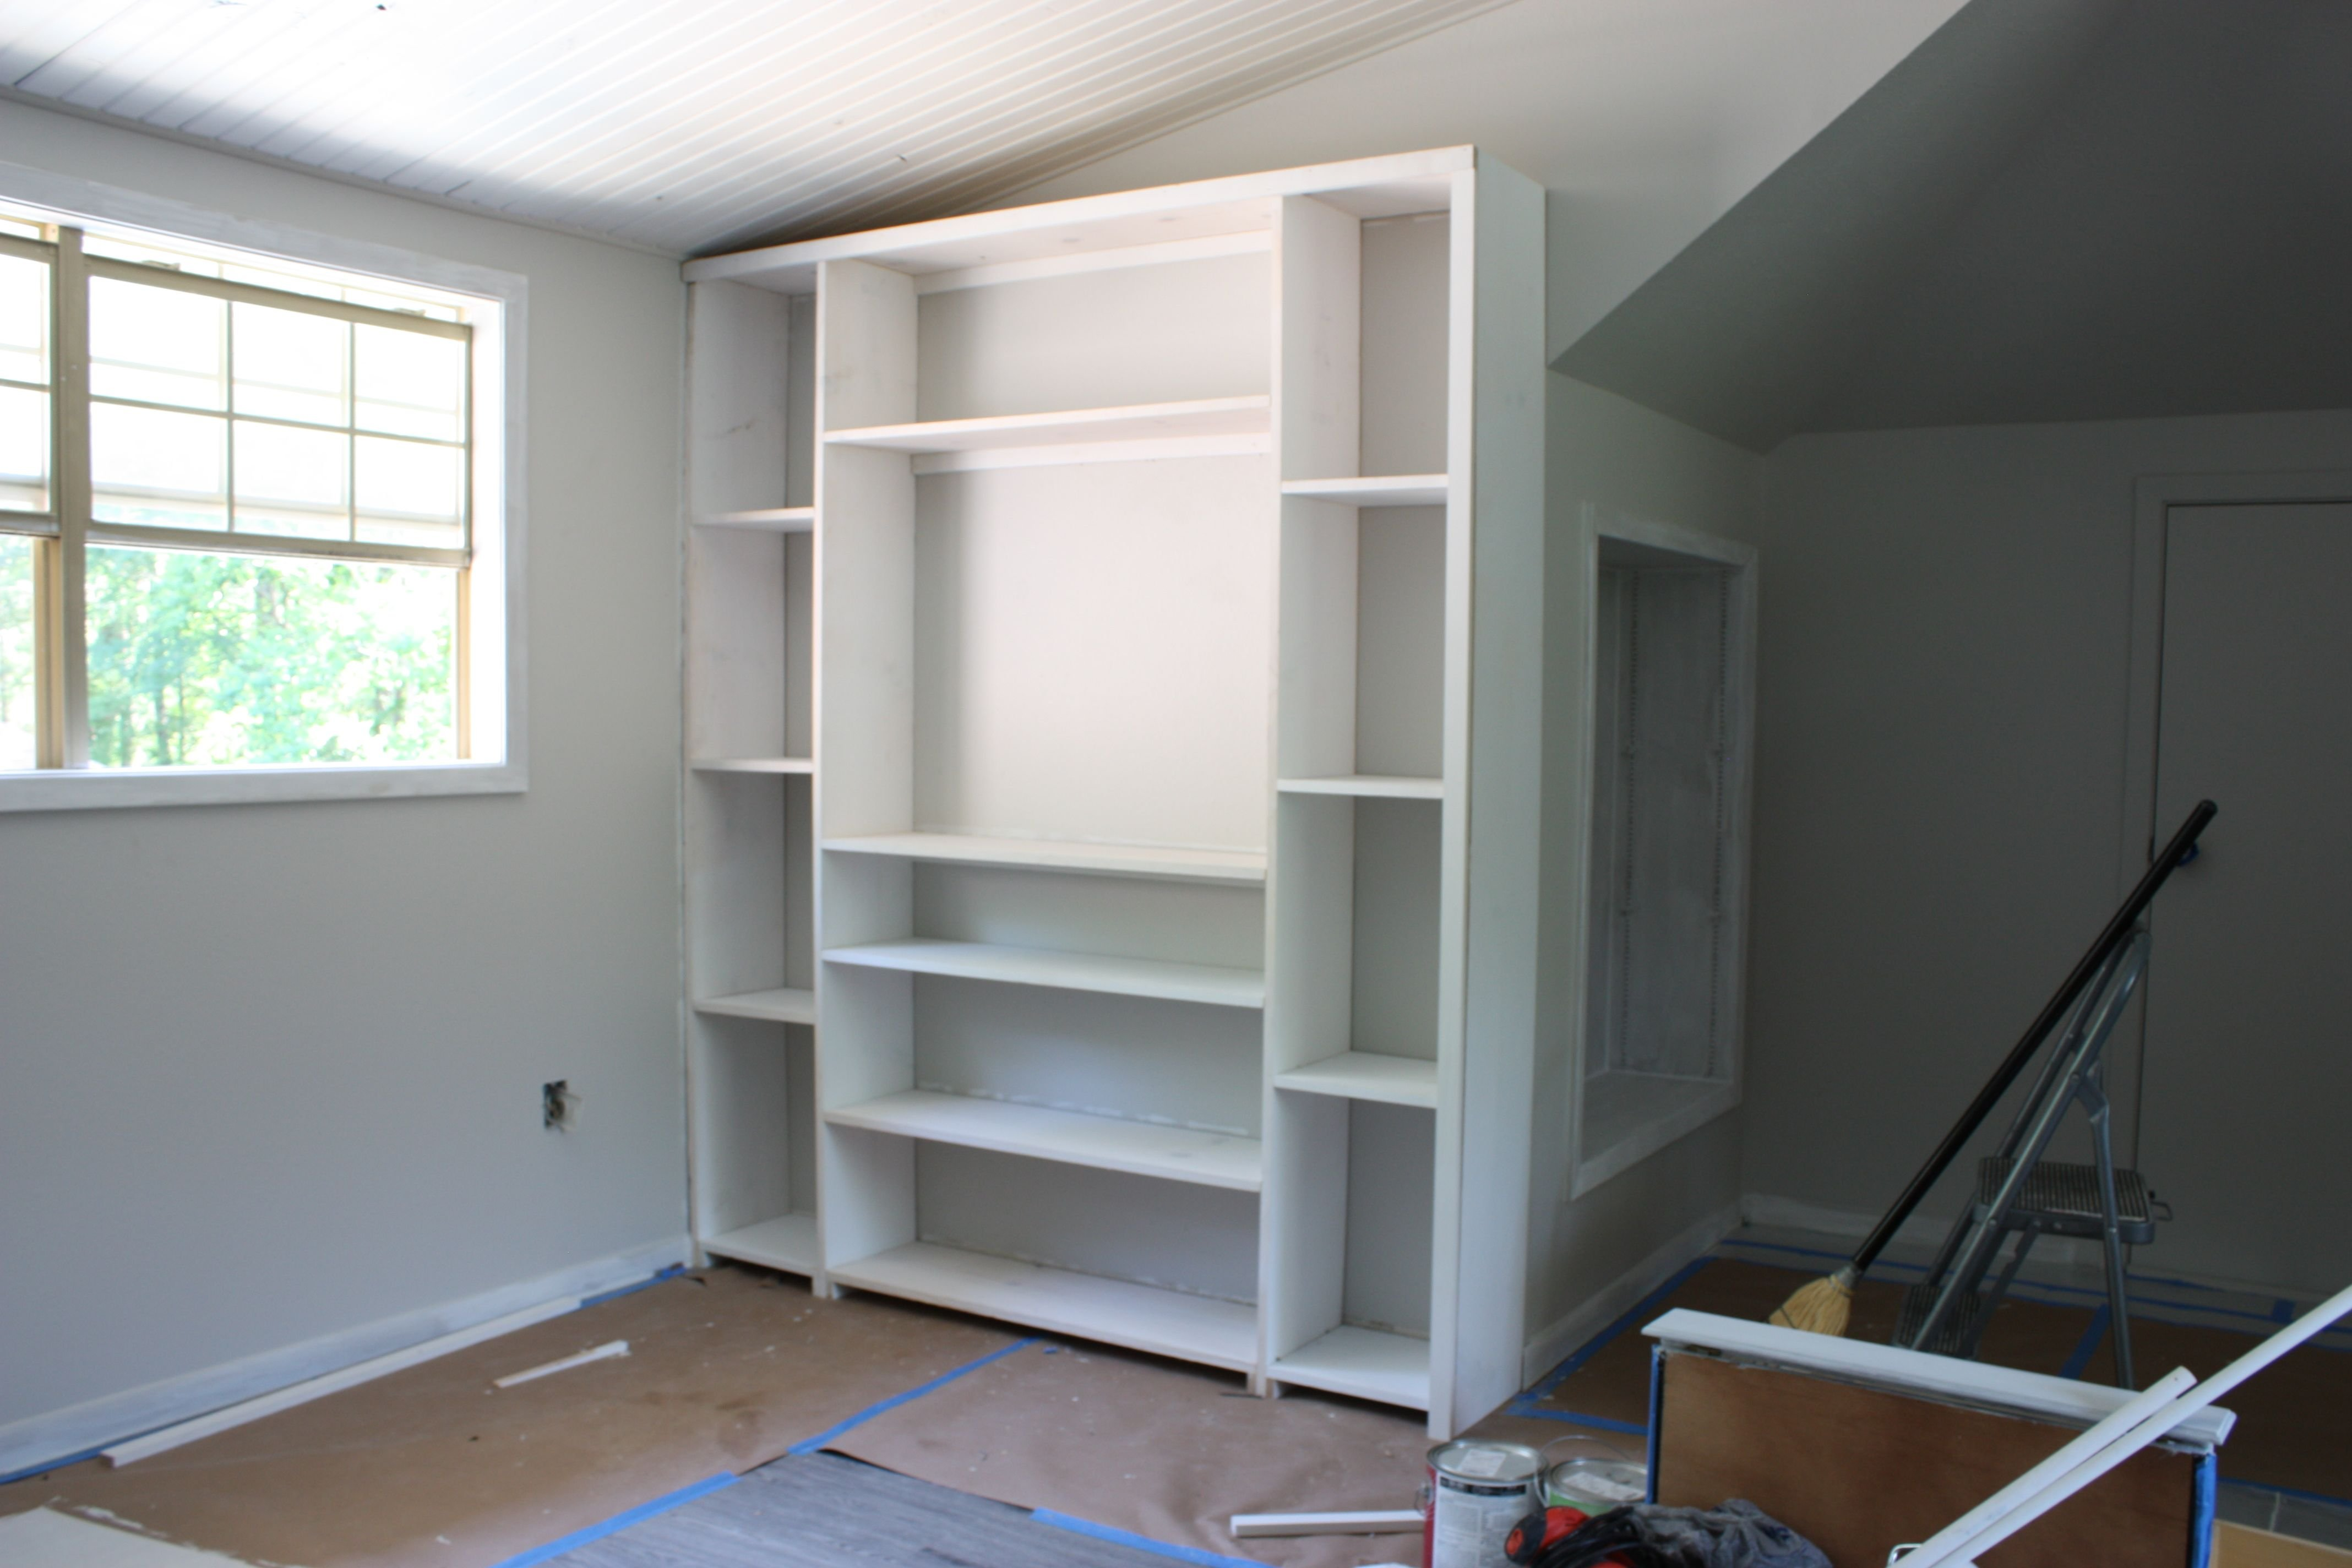 Base Cabinets For Desk Create Built In Shelving And Cabinets On A Tight Budget